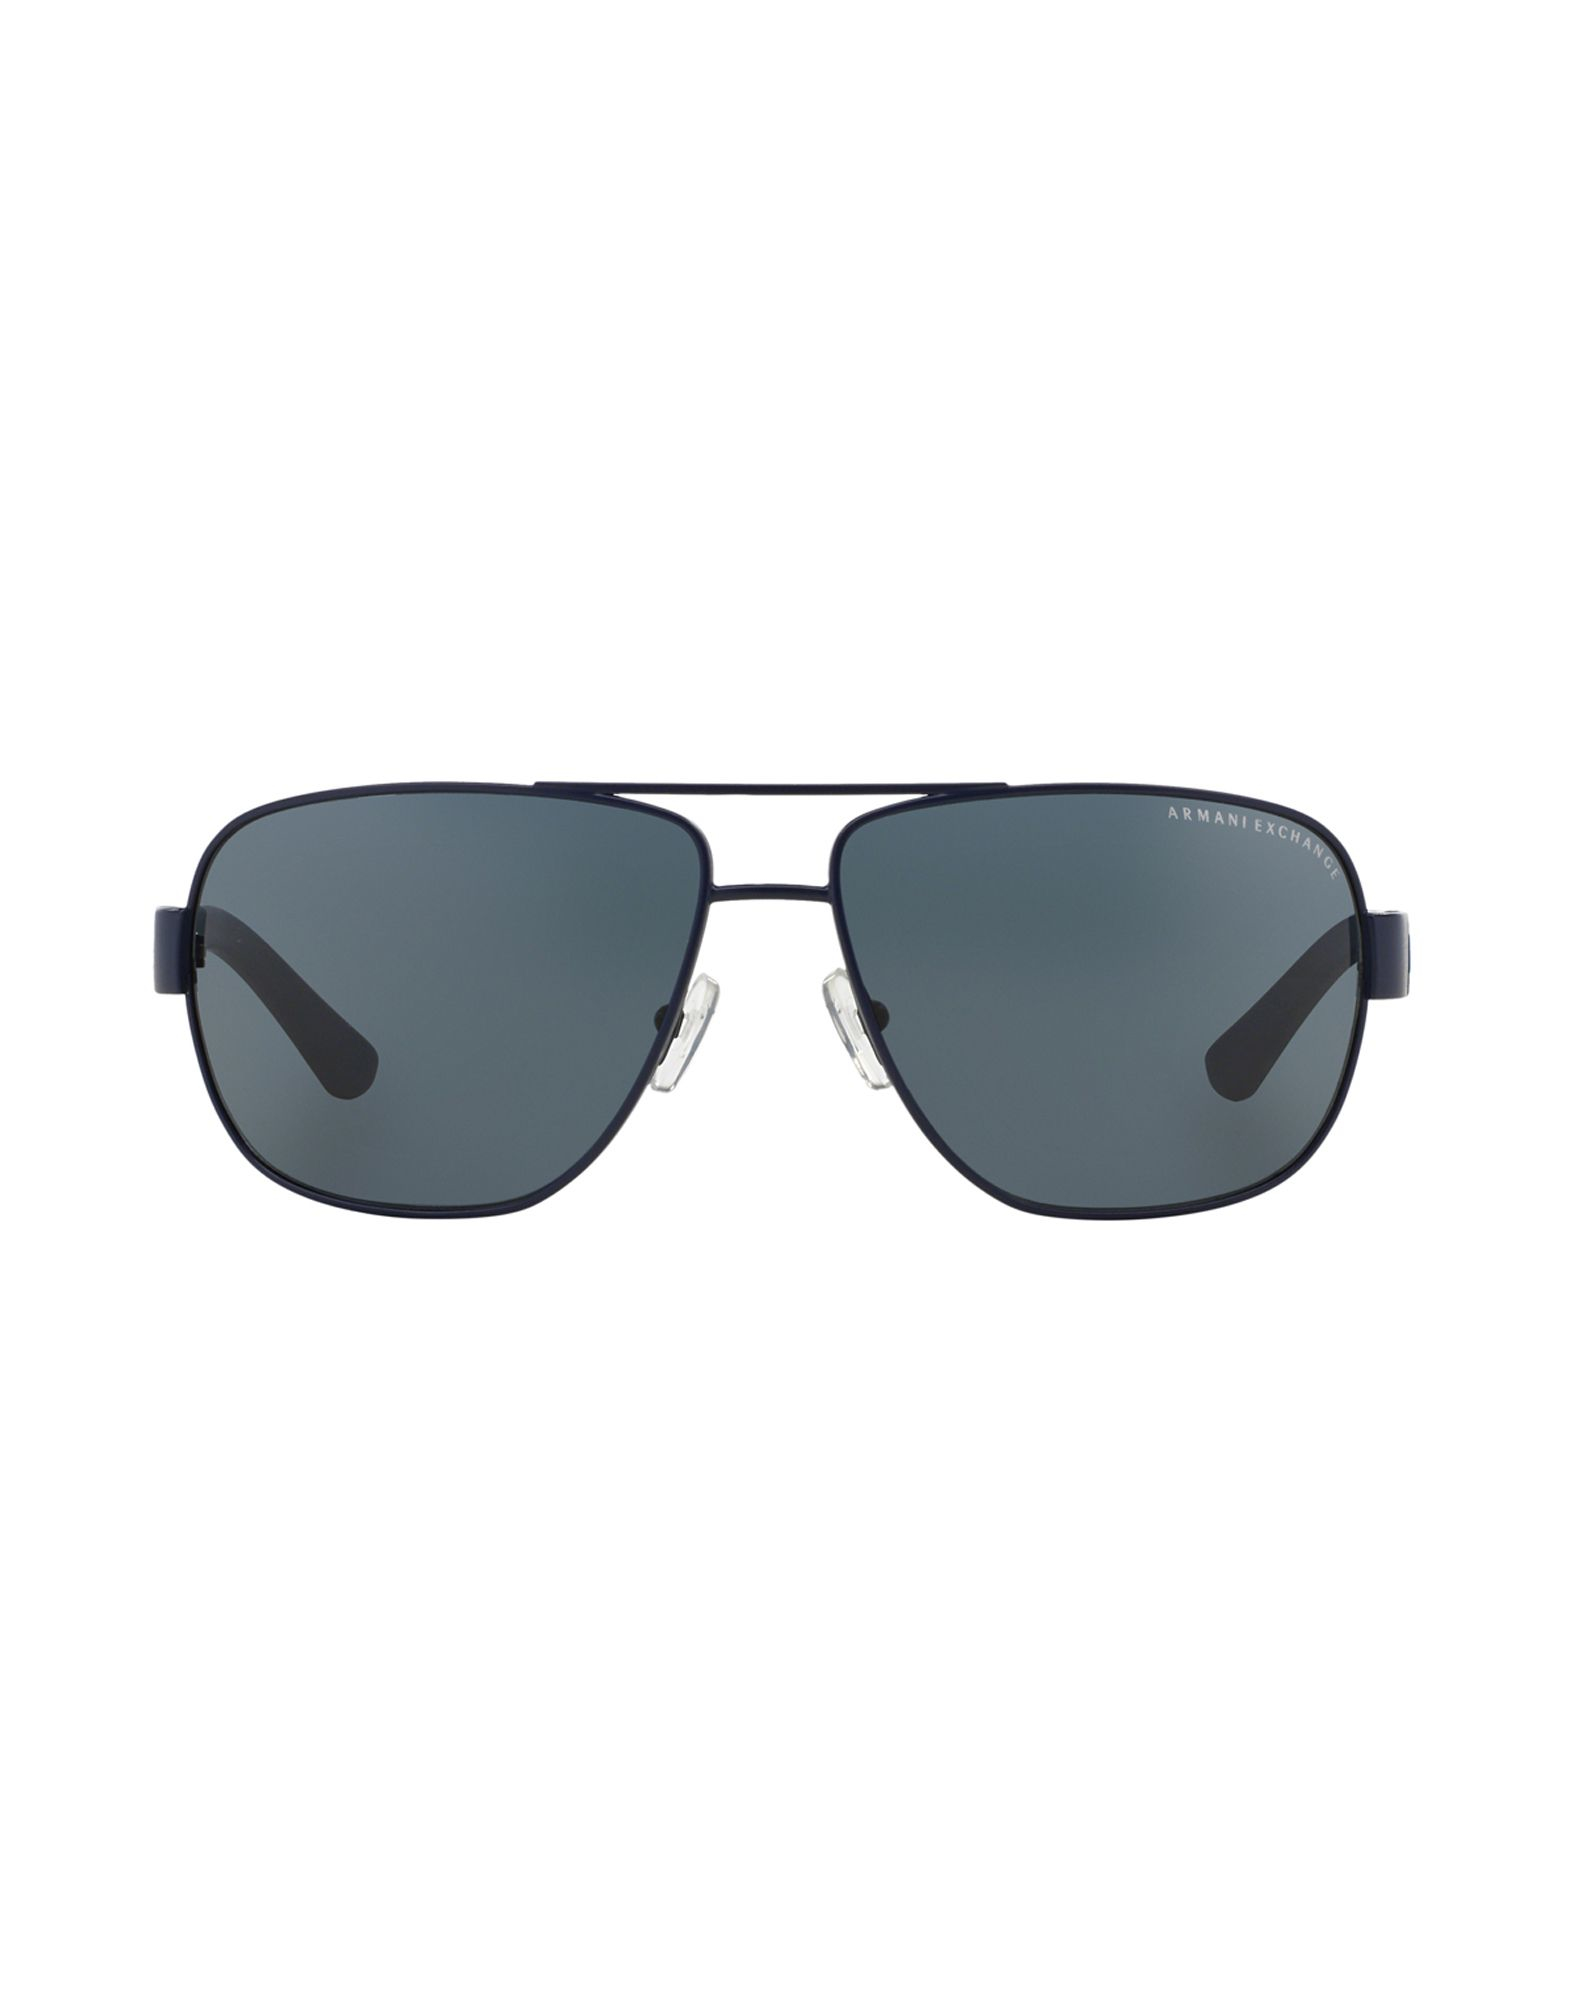 Armani Exchange Metal Shield Sunglasses Www Tapdance Org